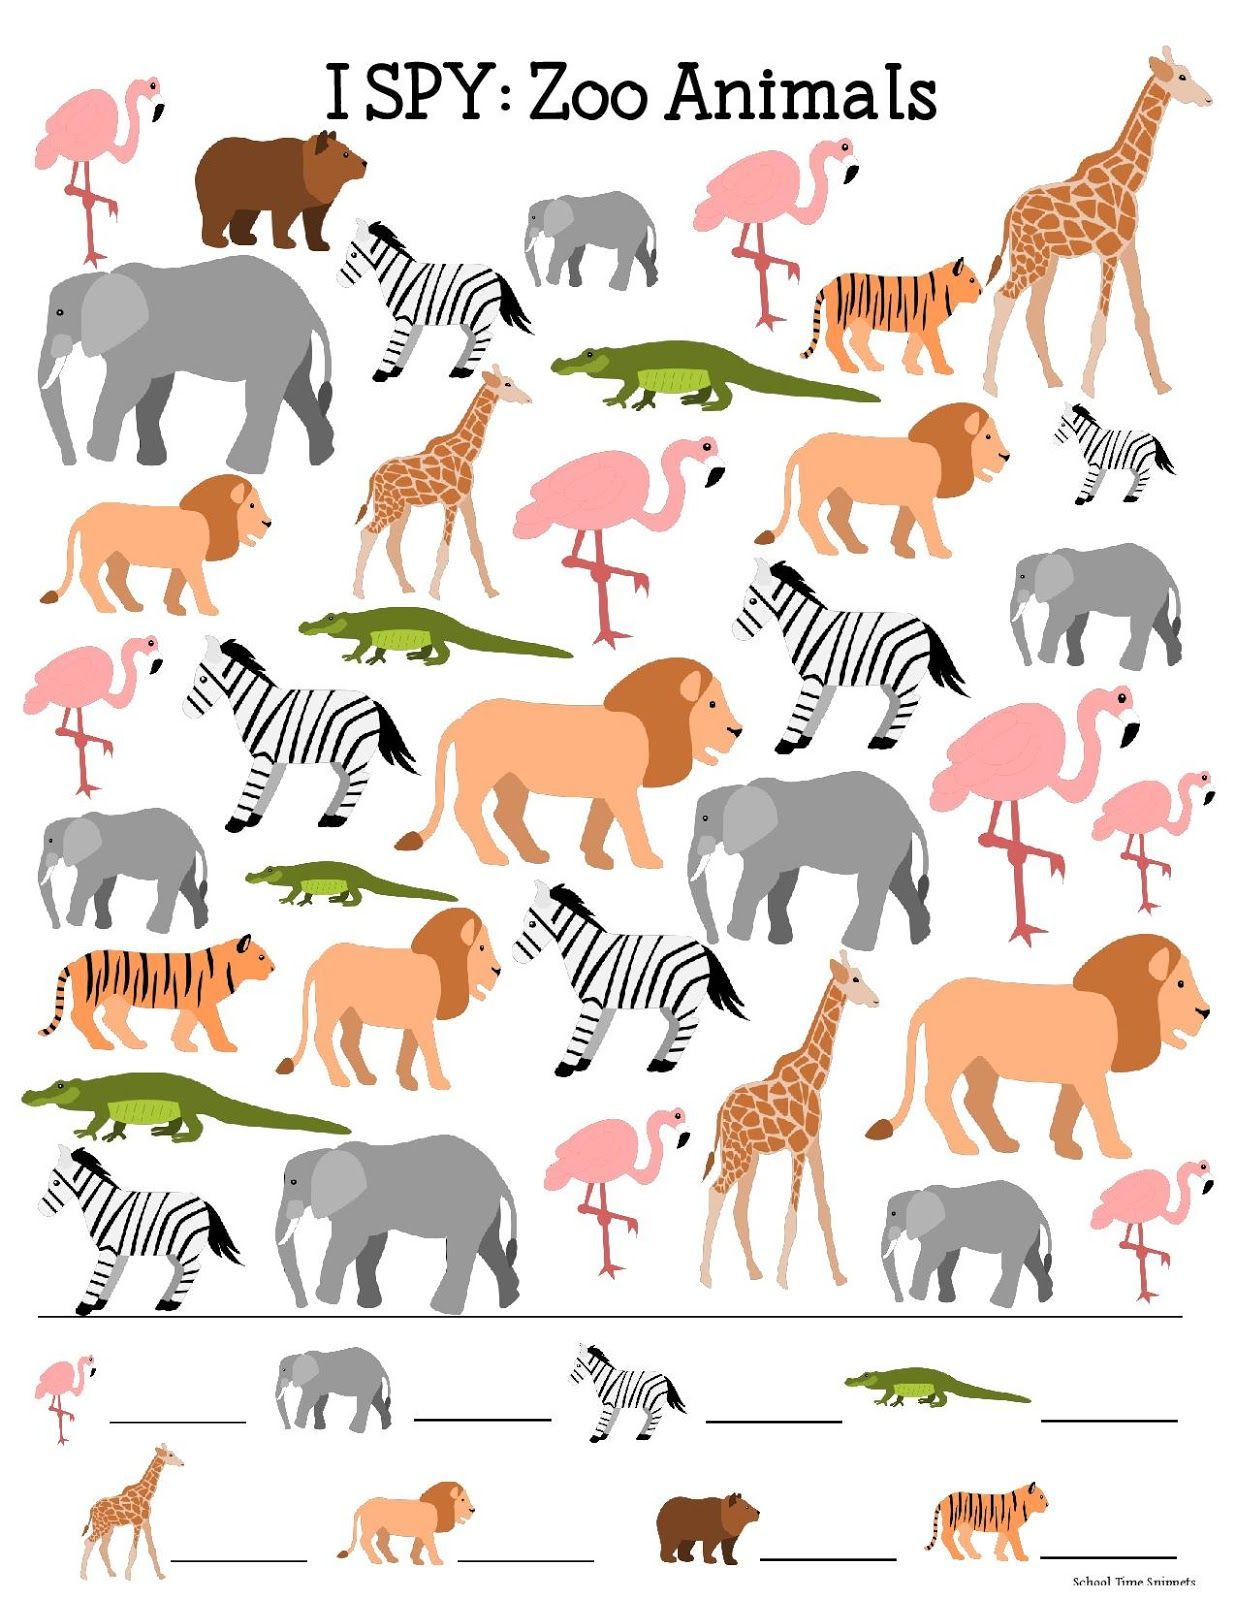 zoo theme i spy printable zoo preschool zoo theme zoo preschool zoo activities preschool. Black Bedroom Furniture Sets. Home Design Ideas